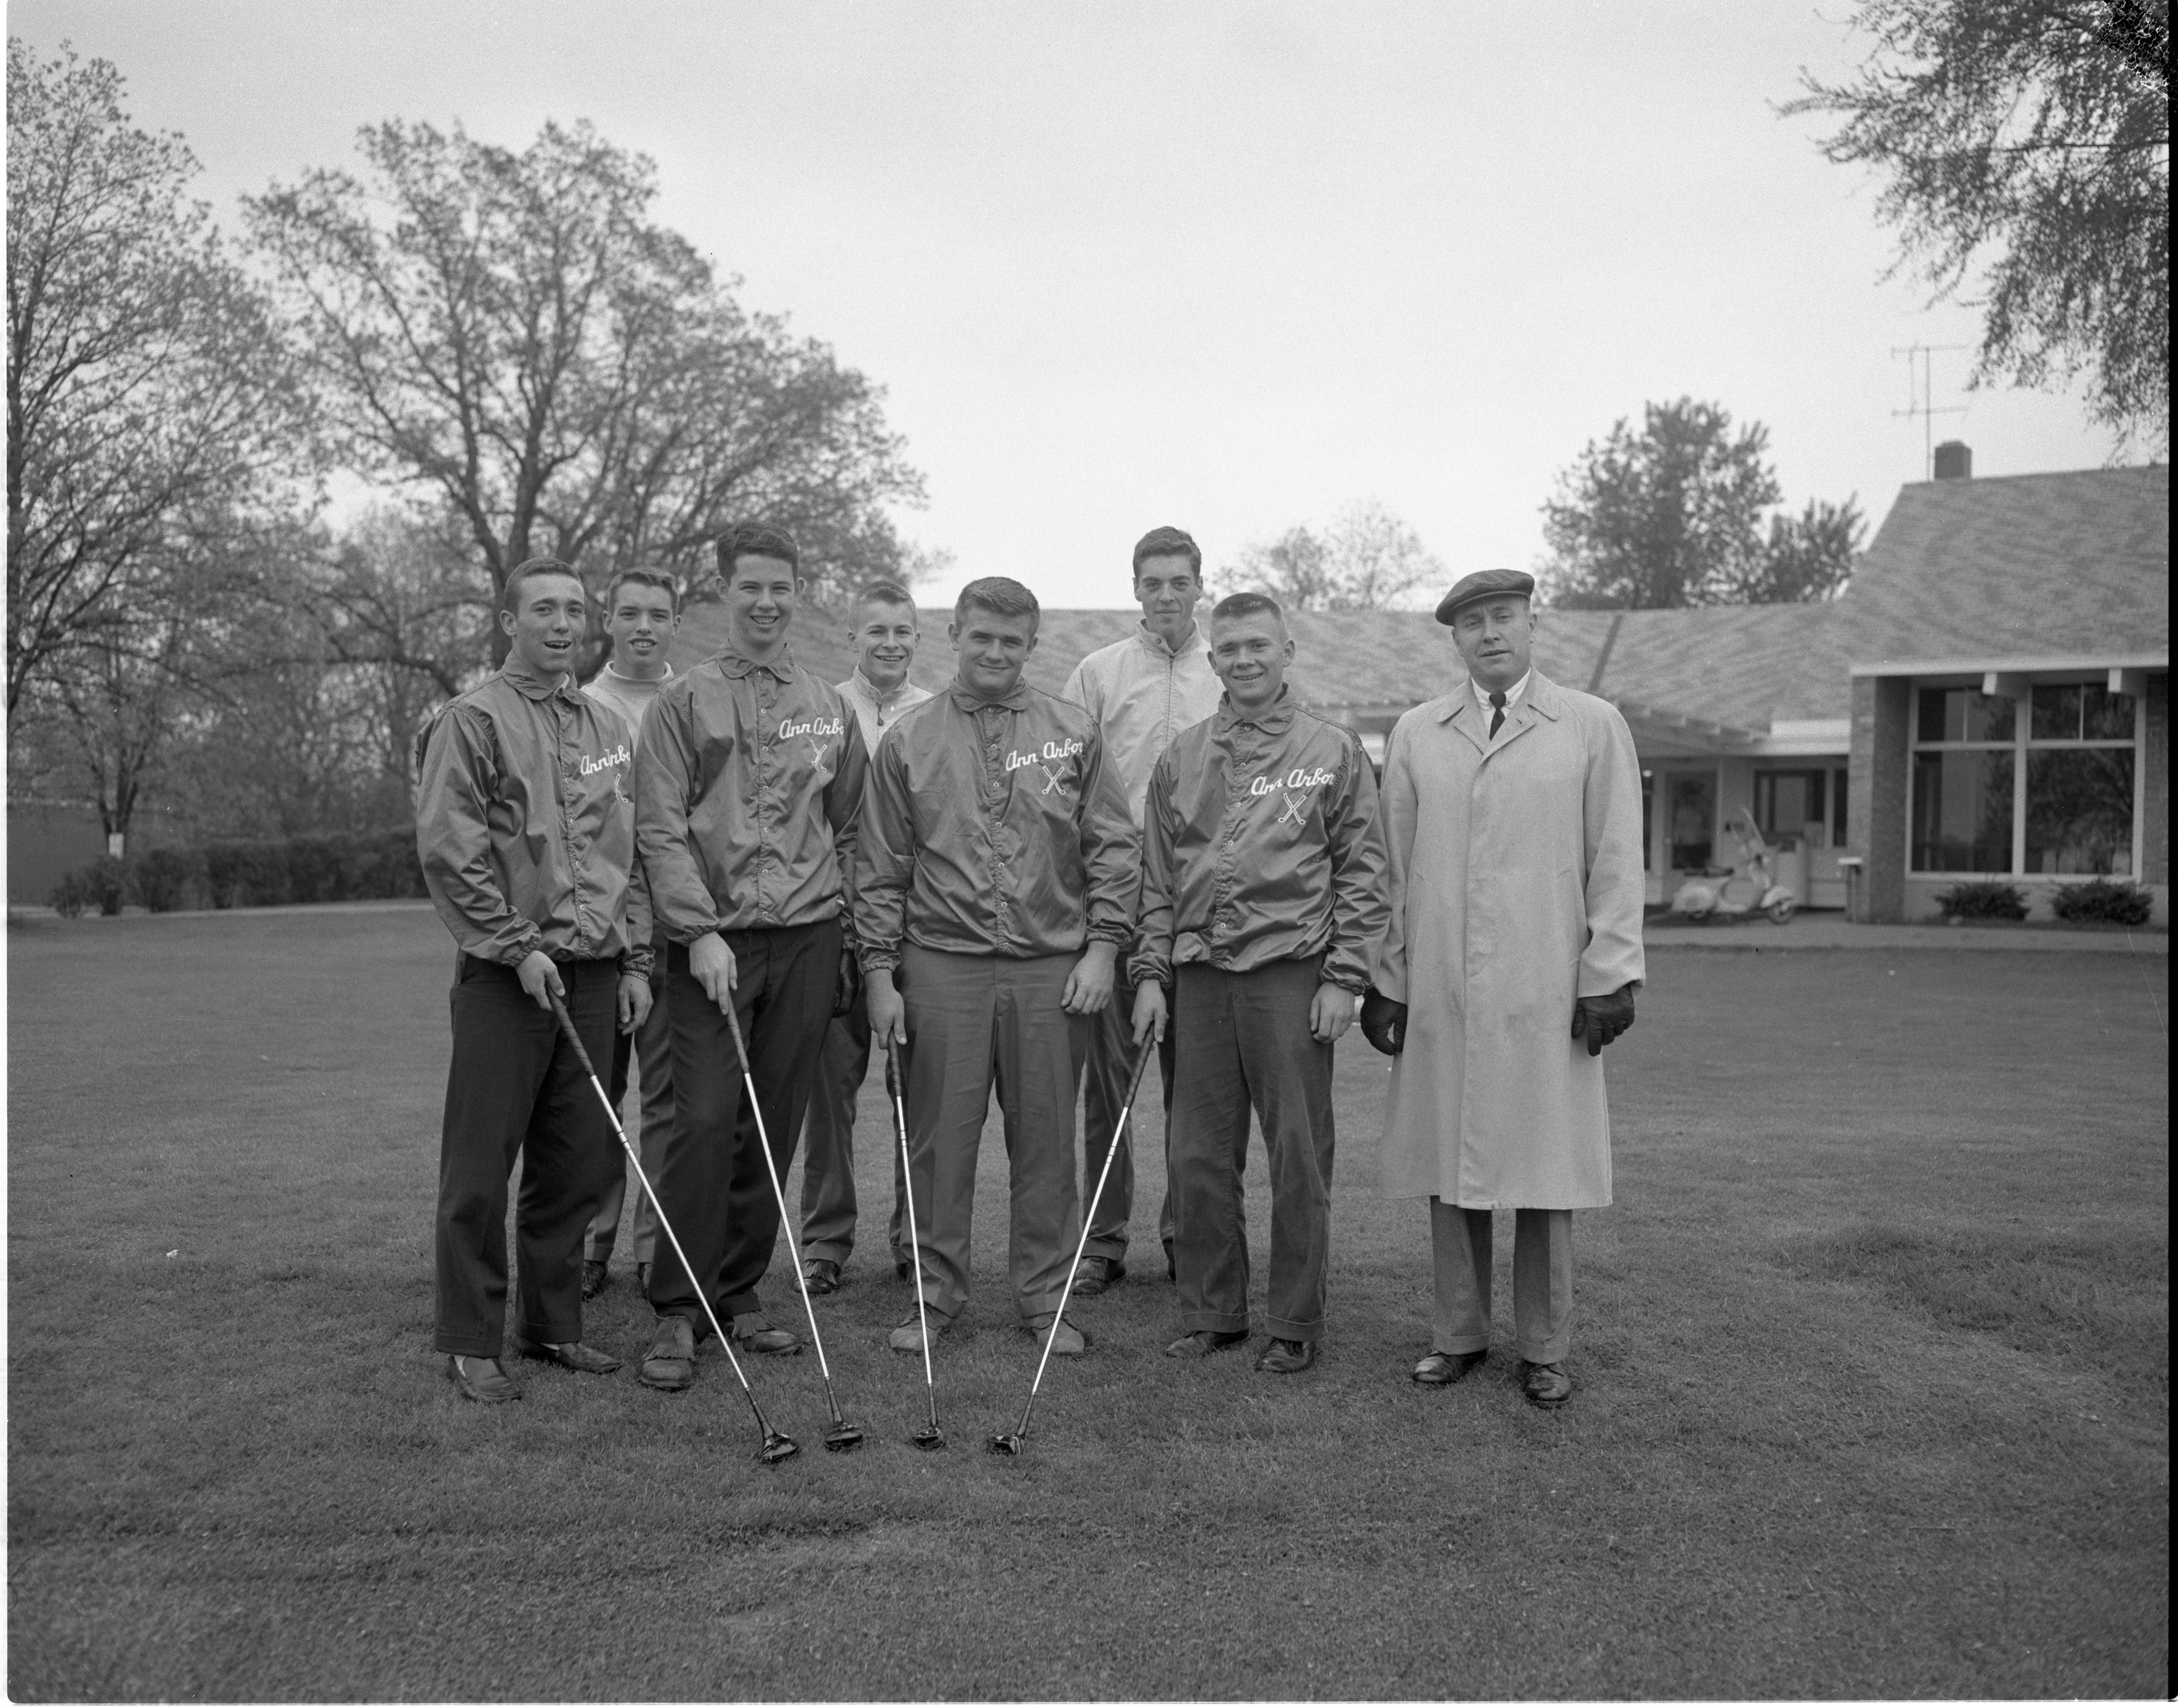 Ann Arbor High School Golf Team - Regional Champions, May 1960 image